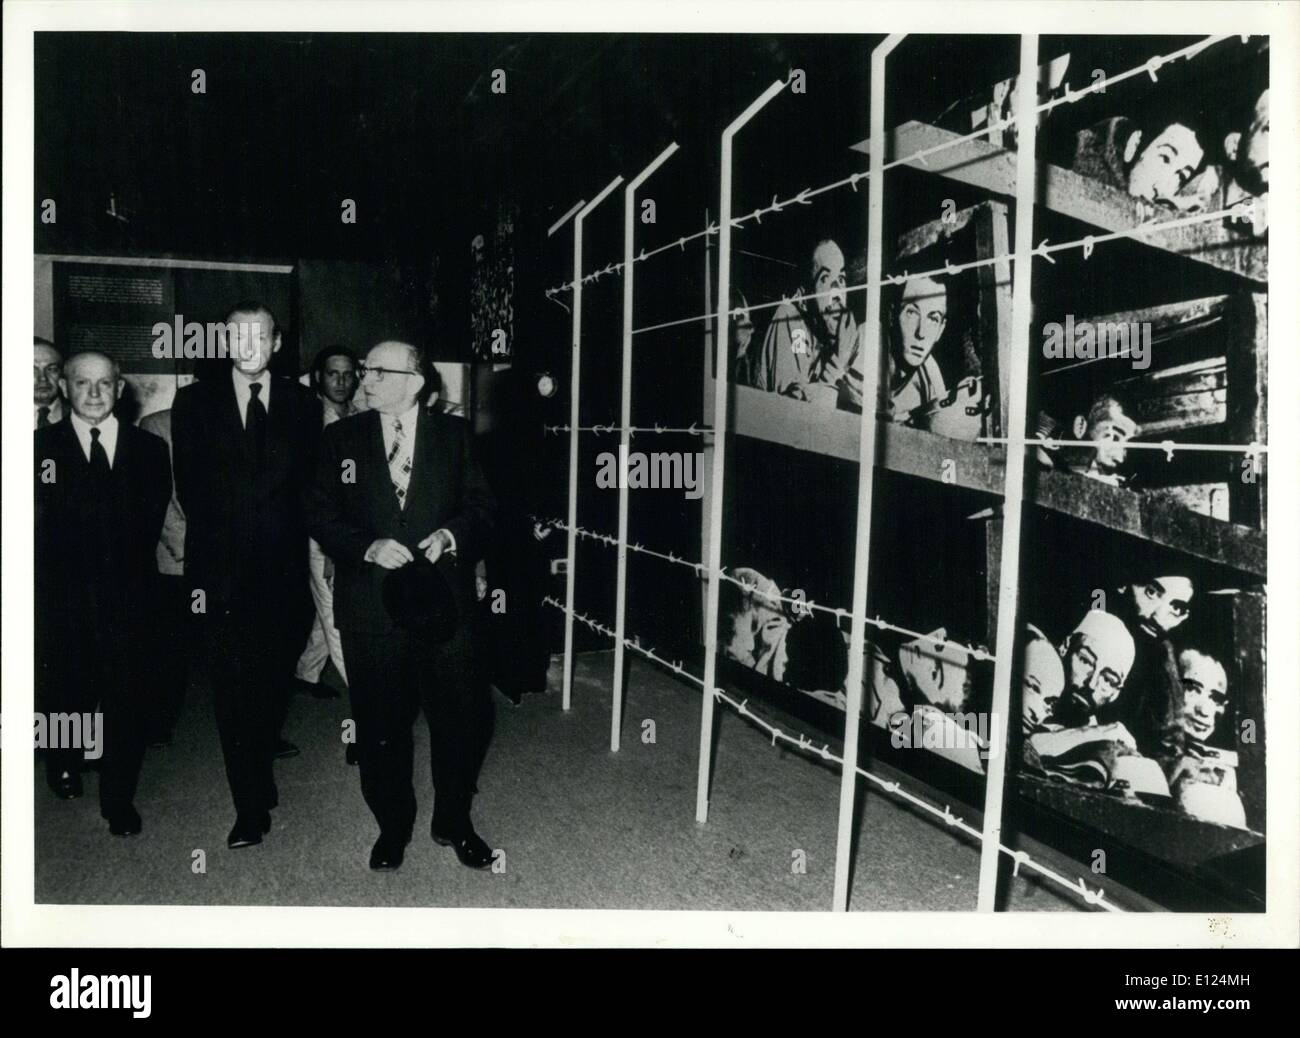 Apr. 11, 1986 - The museum is also called the Yad Vashem Museum. There is a picture of the Mathausen concentration camp on the right wall. - Stock Image